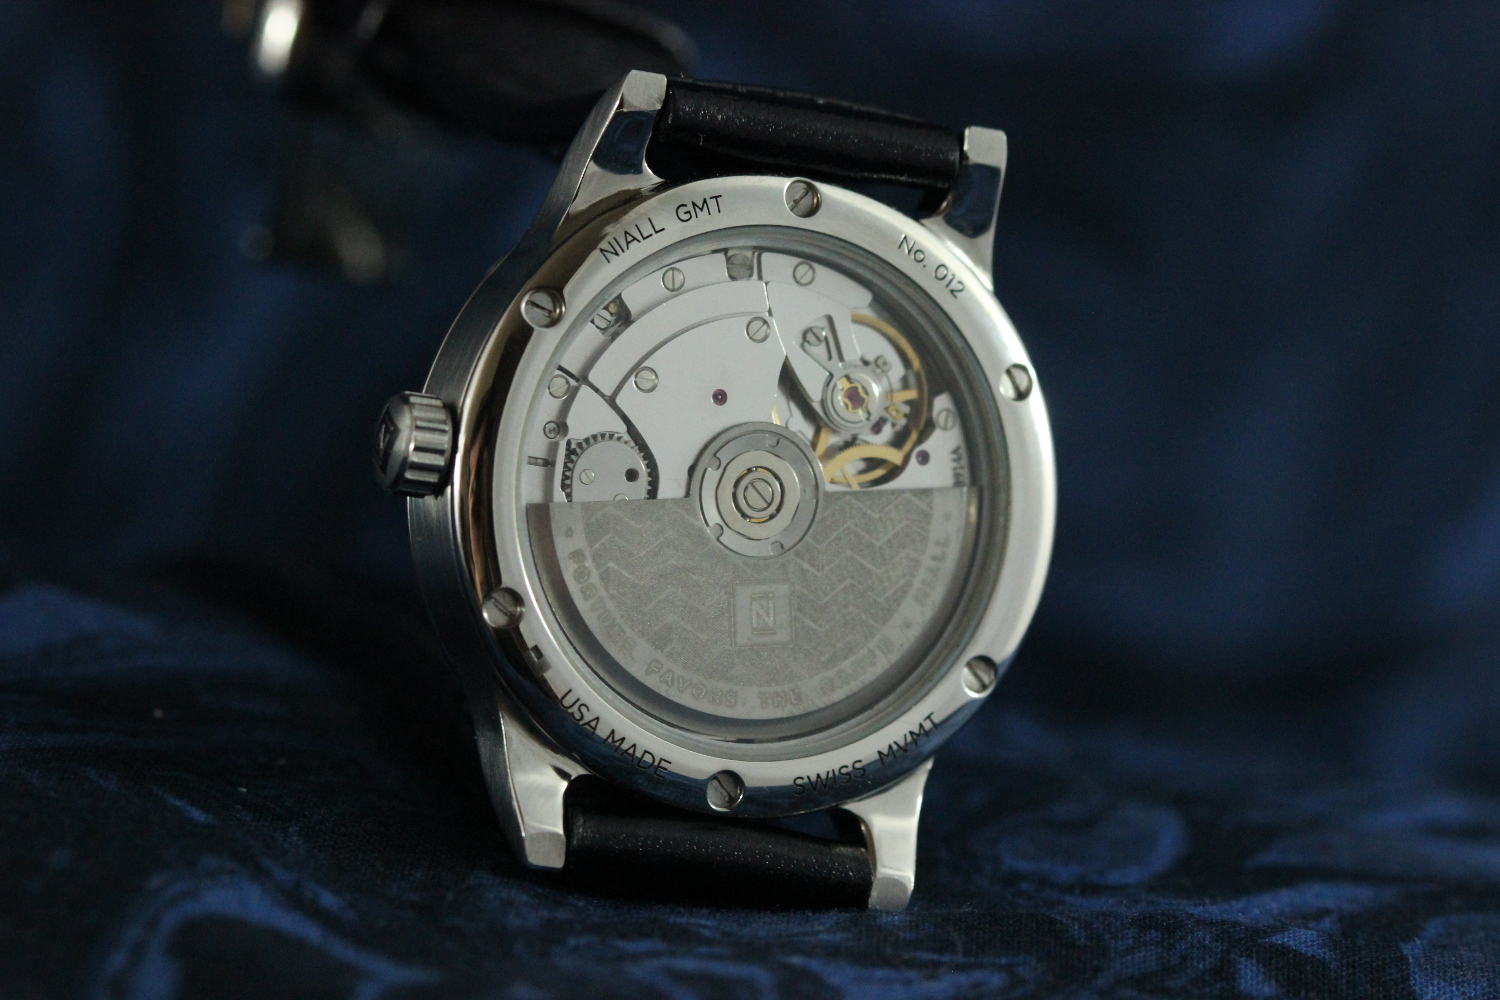 The Eterna 3914a movment used in the Niall GMT line. The rotor is laser engraved in Kansas City, MO.